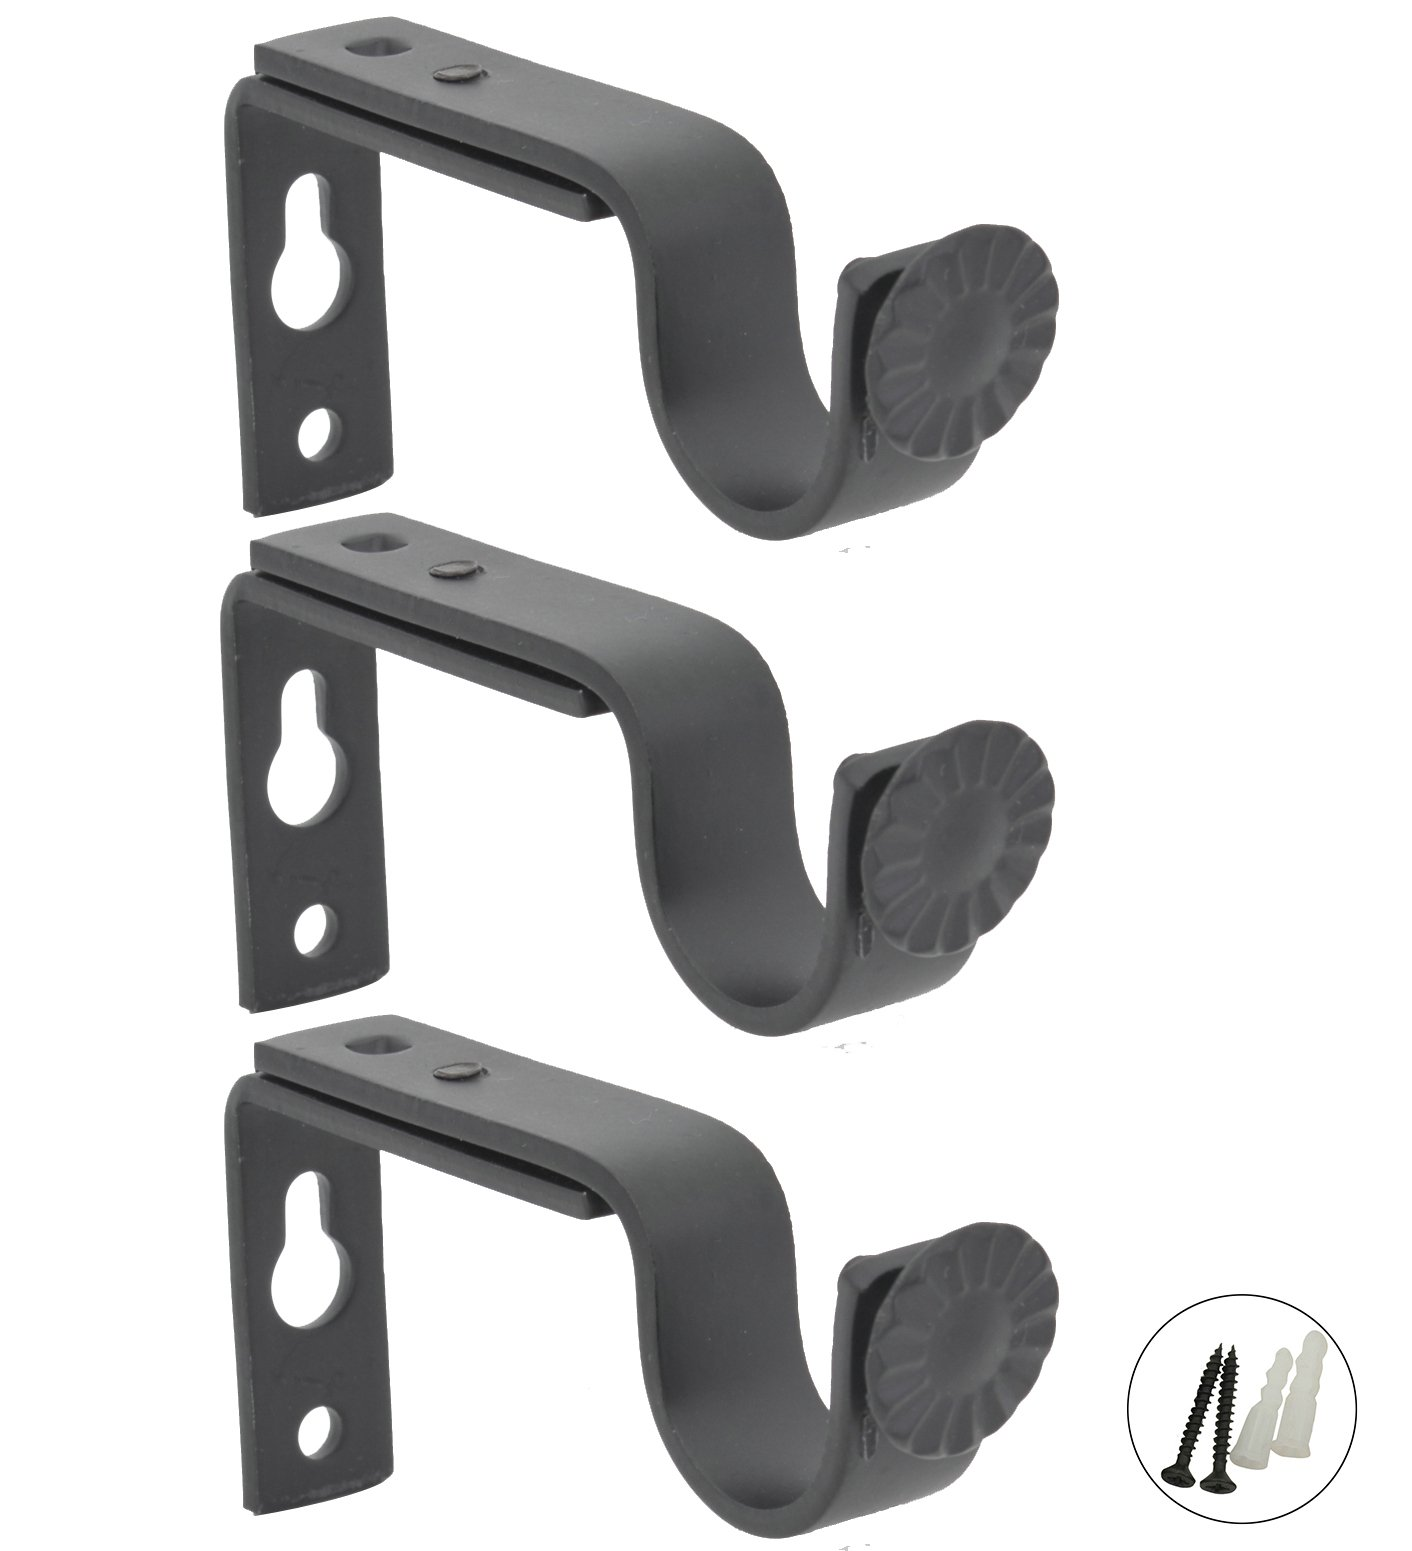 AddGrace Adjustable Curtain Rod Brackets Outside Prime Mounted Blinds Curtain Rod Holder Attachment (Black) Set of 3